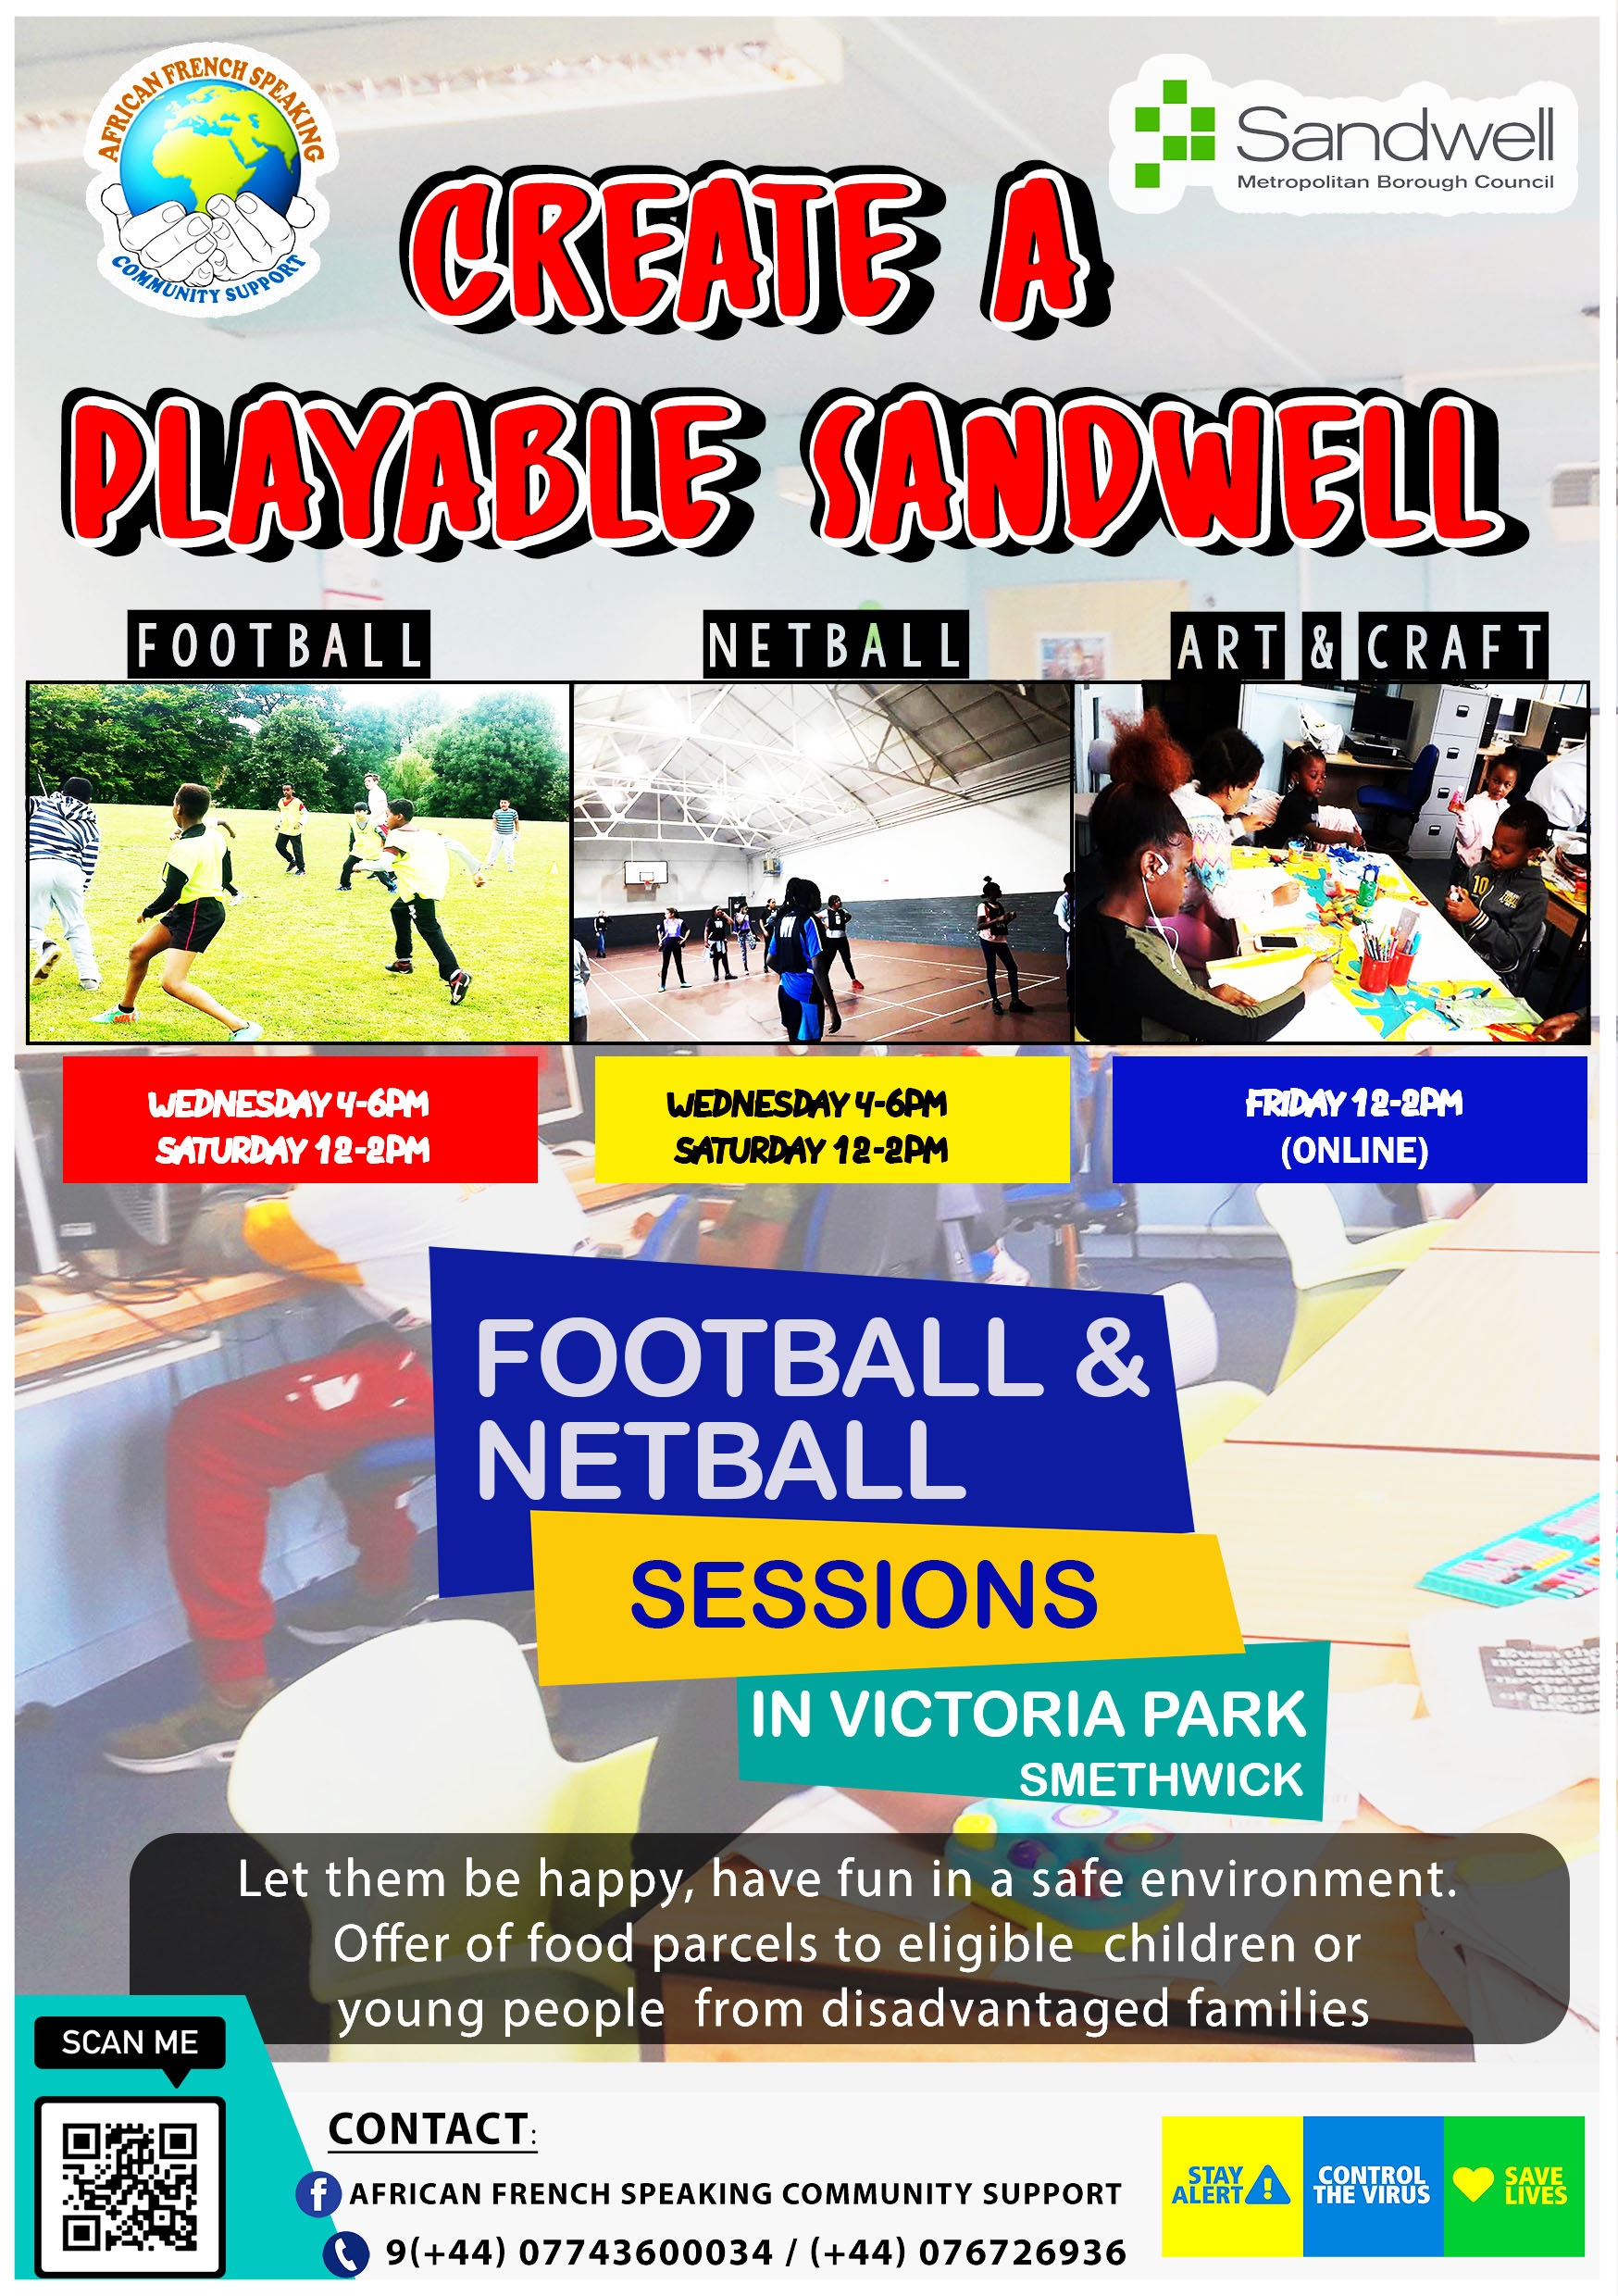 CREATE A PLAYABLE SANDWELL